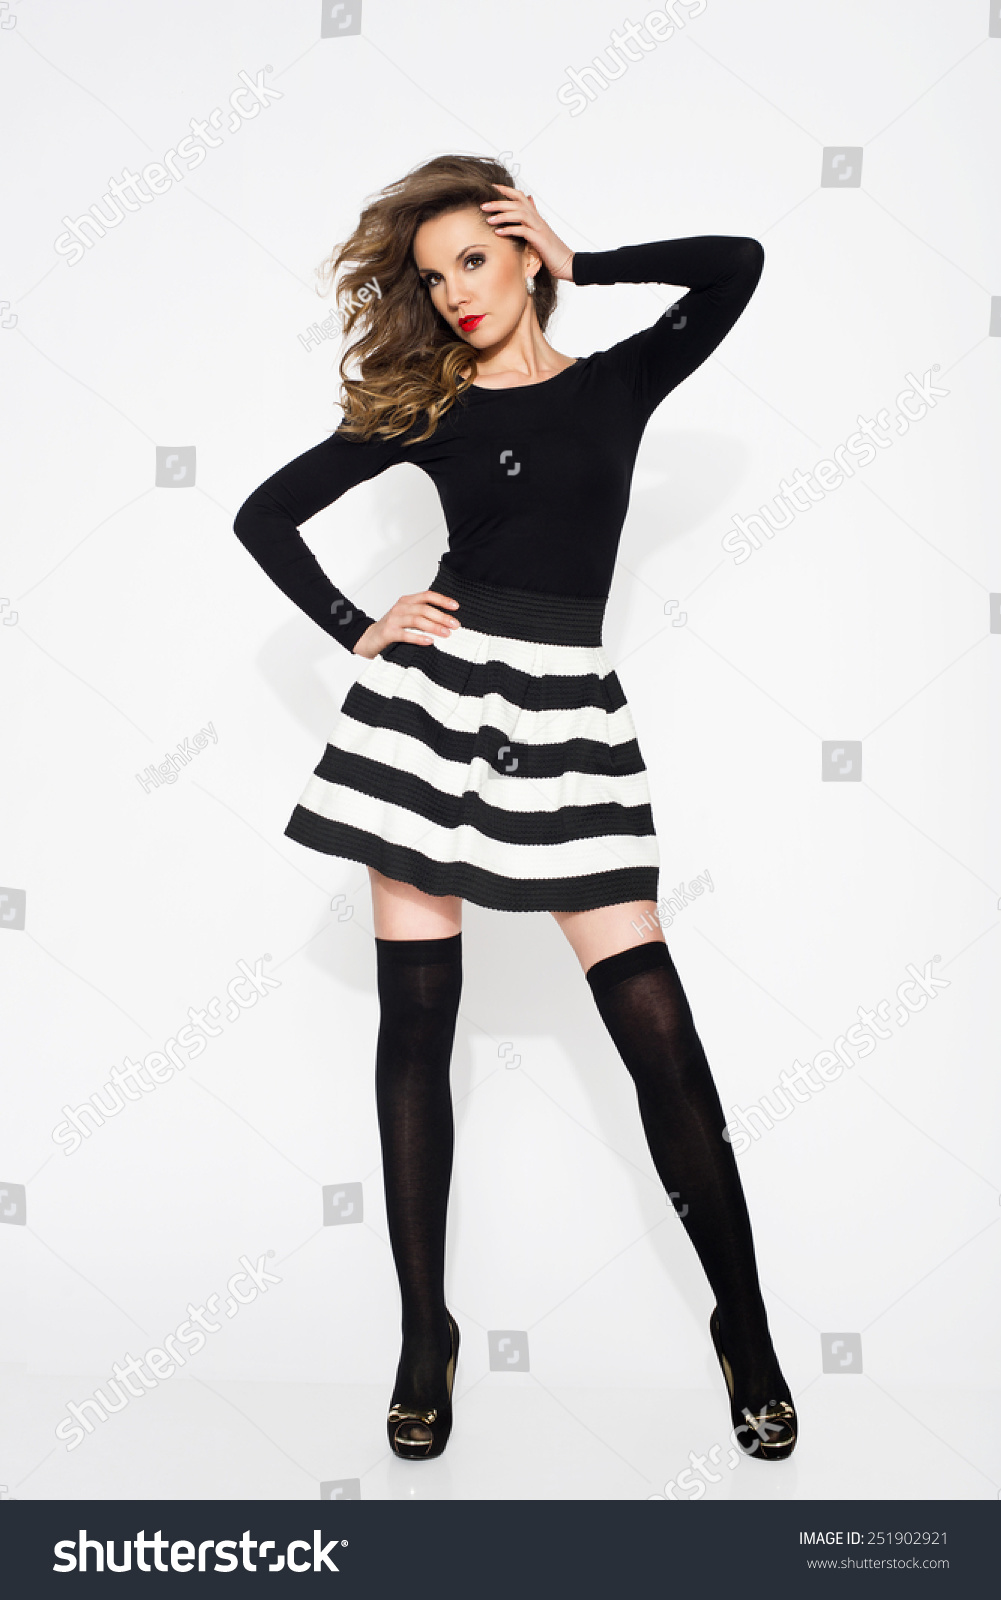 Awesome Black Mini Skirts Short Skirts Women S Skirts Great Legs Amazing Legs